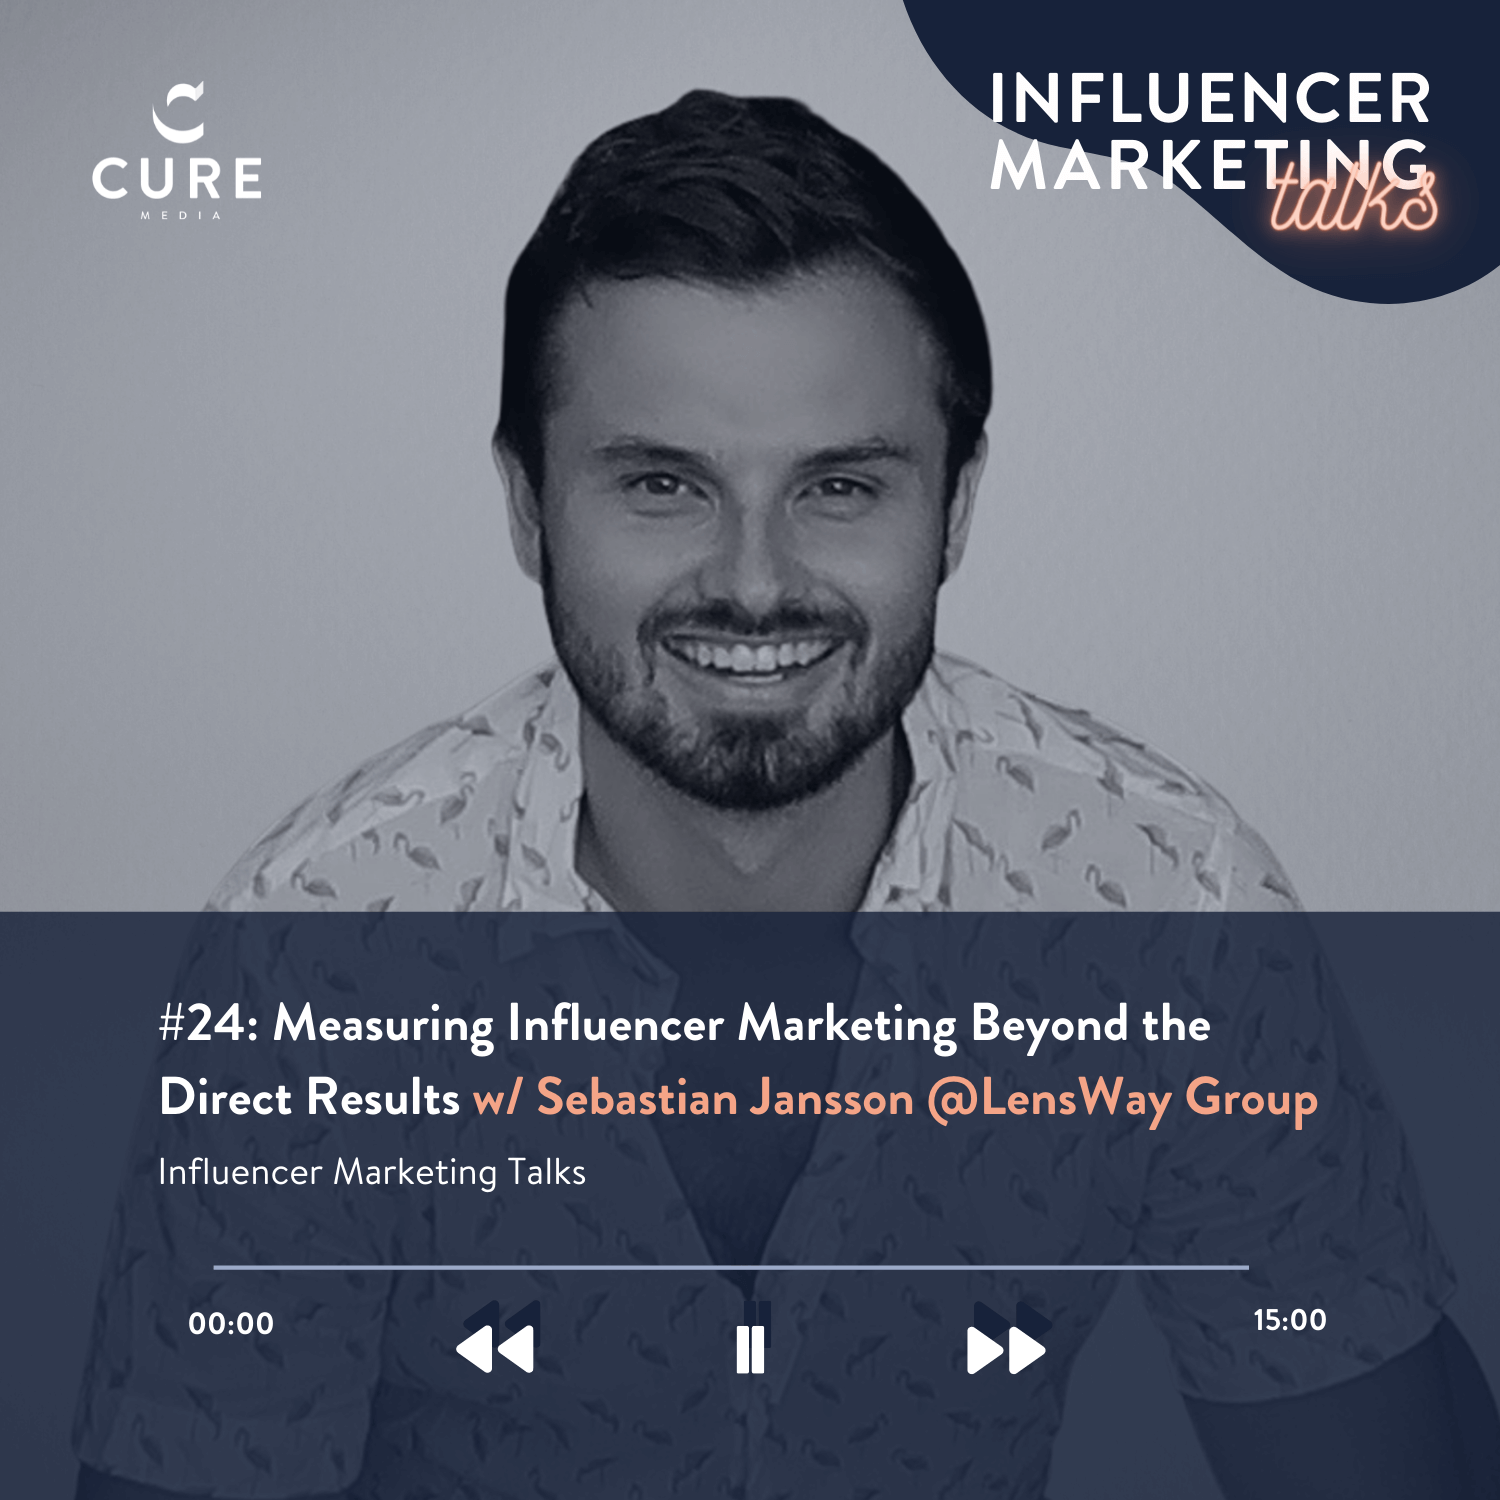 Measuring Influencer Marketing Beyond the Direct Results